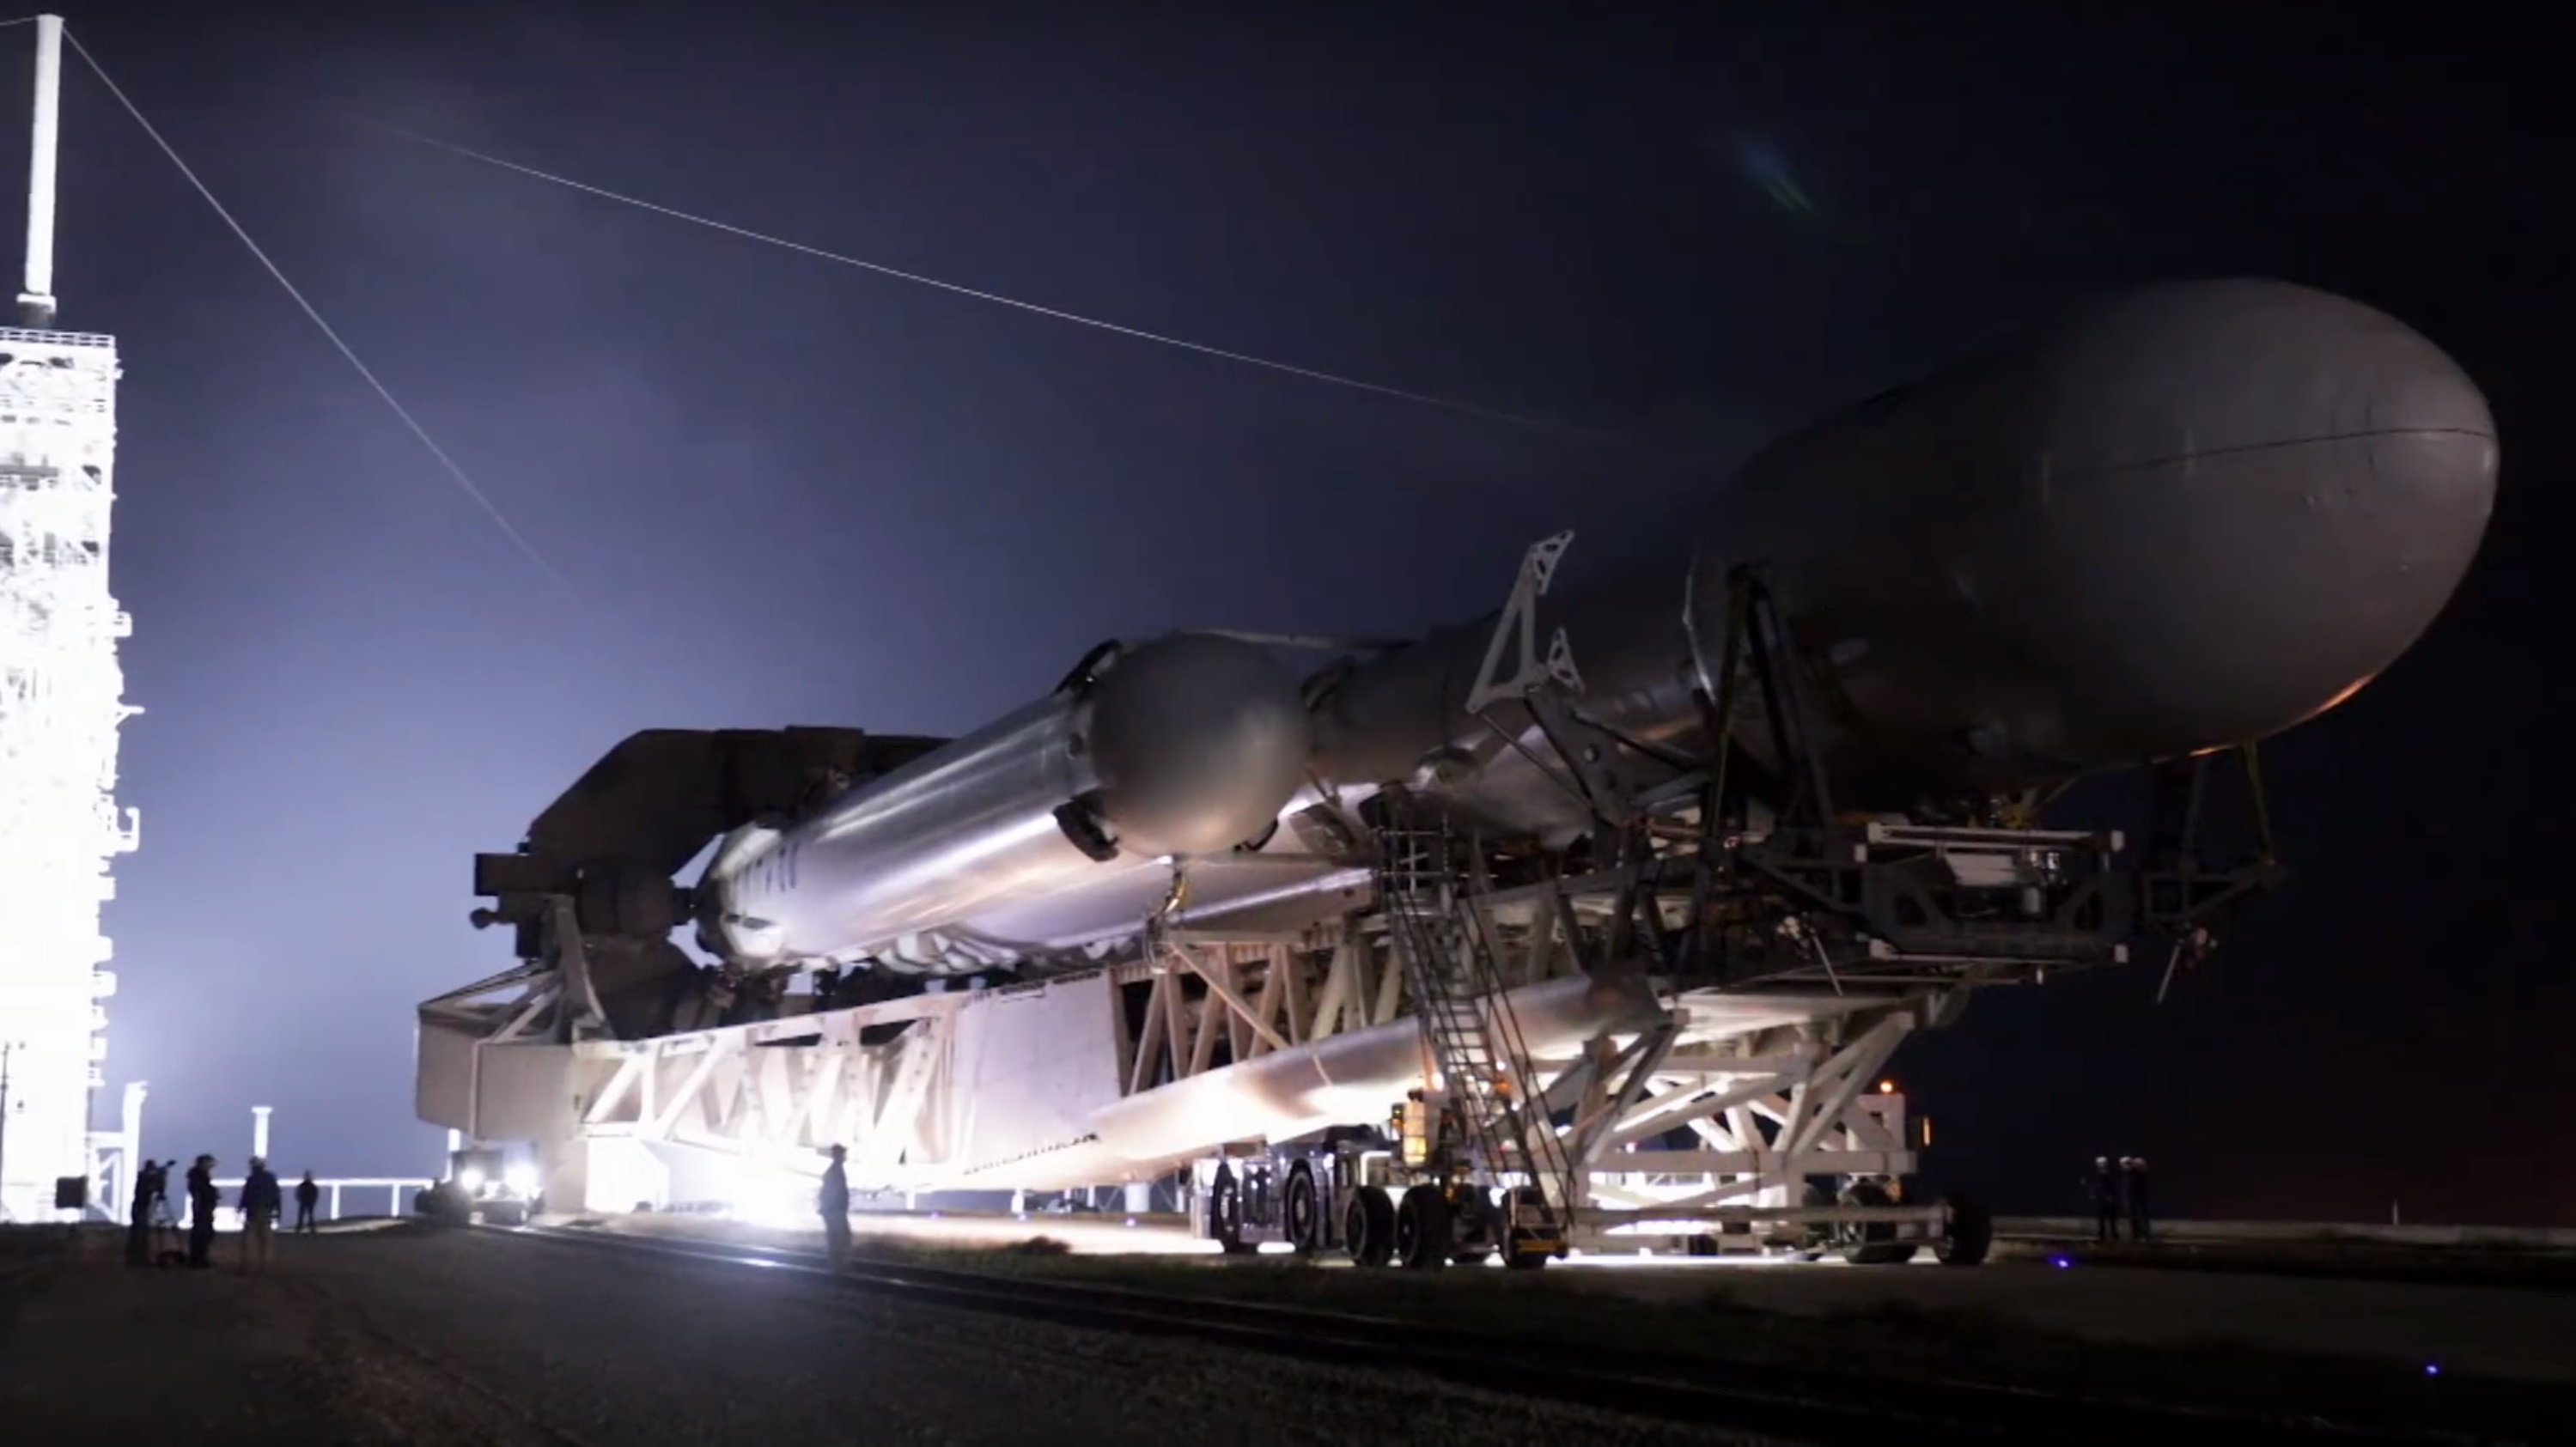 FH rollout 7 (SpaceX)